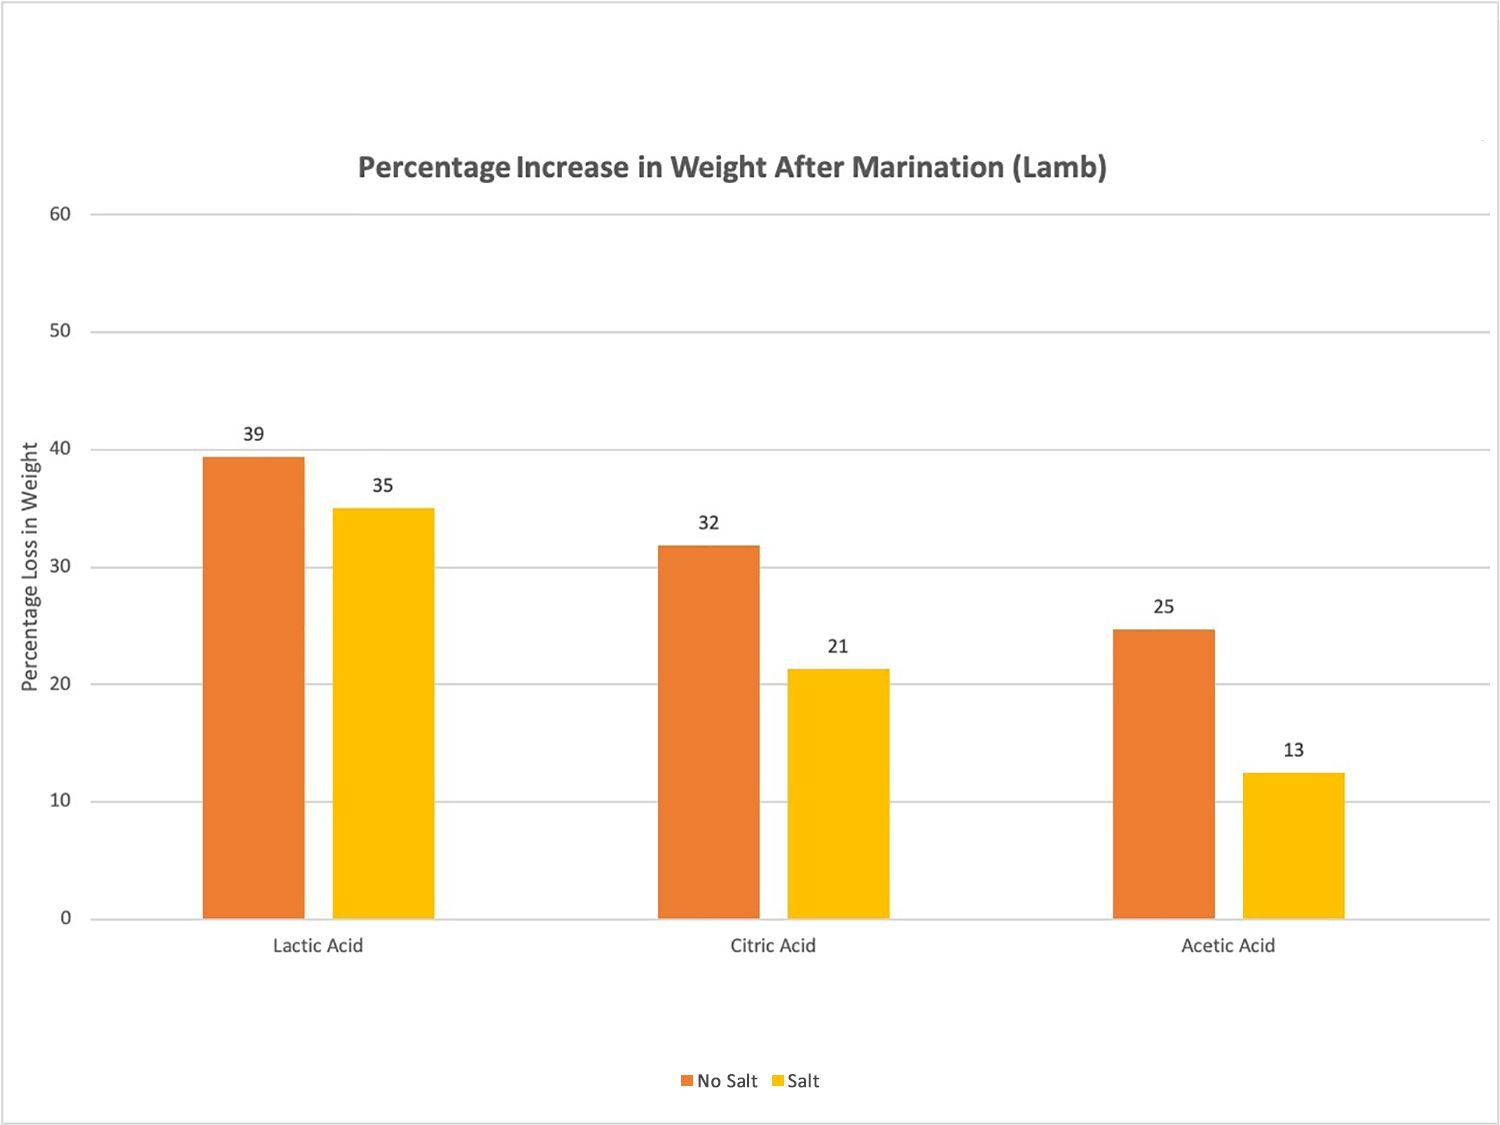 Graph showing percentage increase in weight after marination